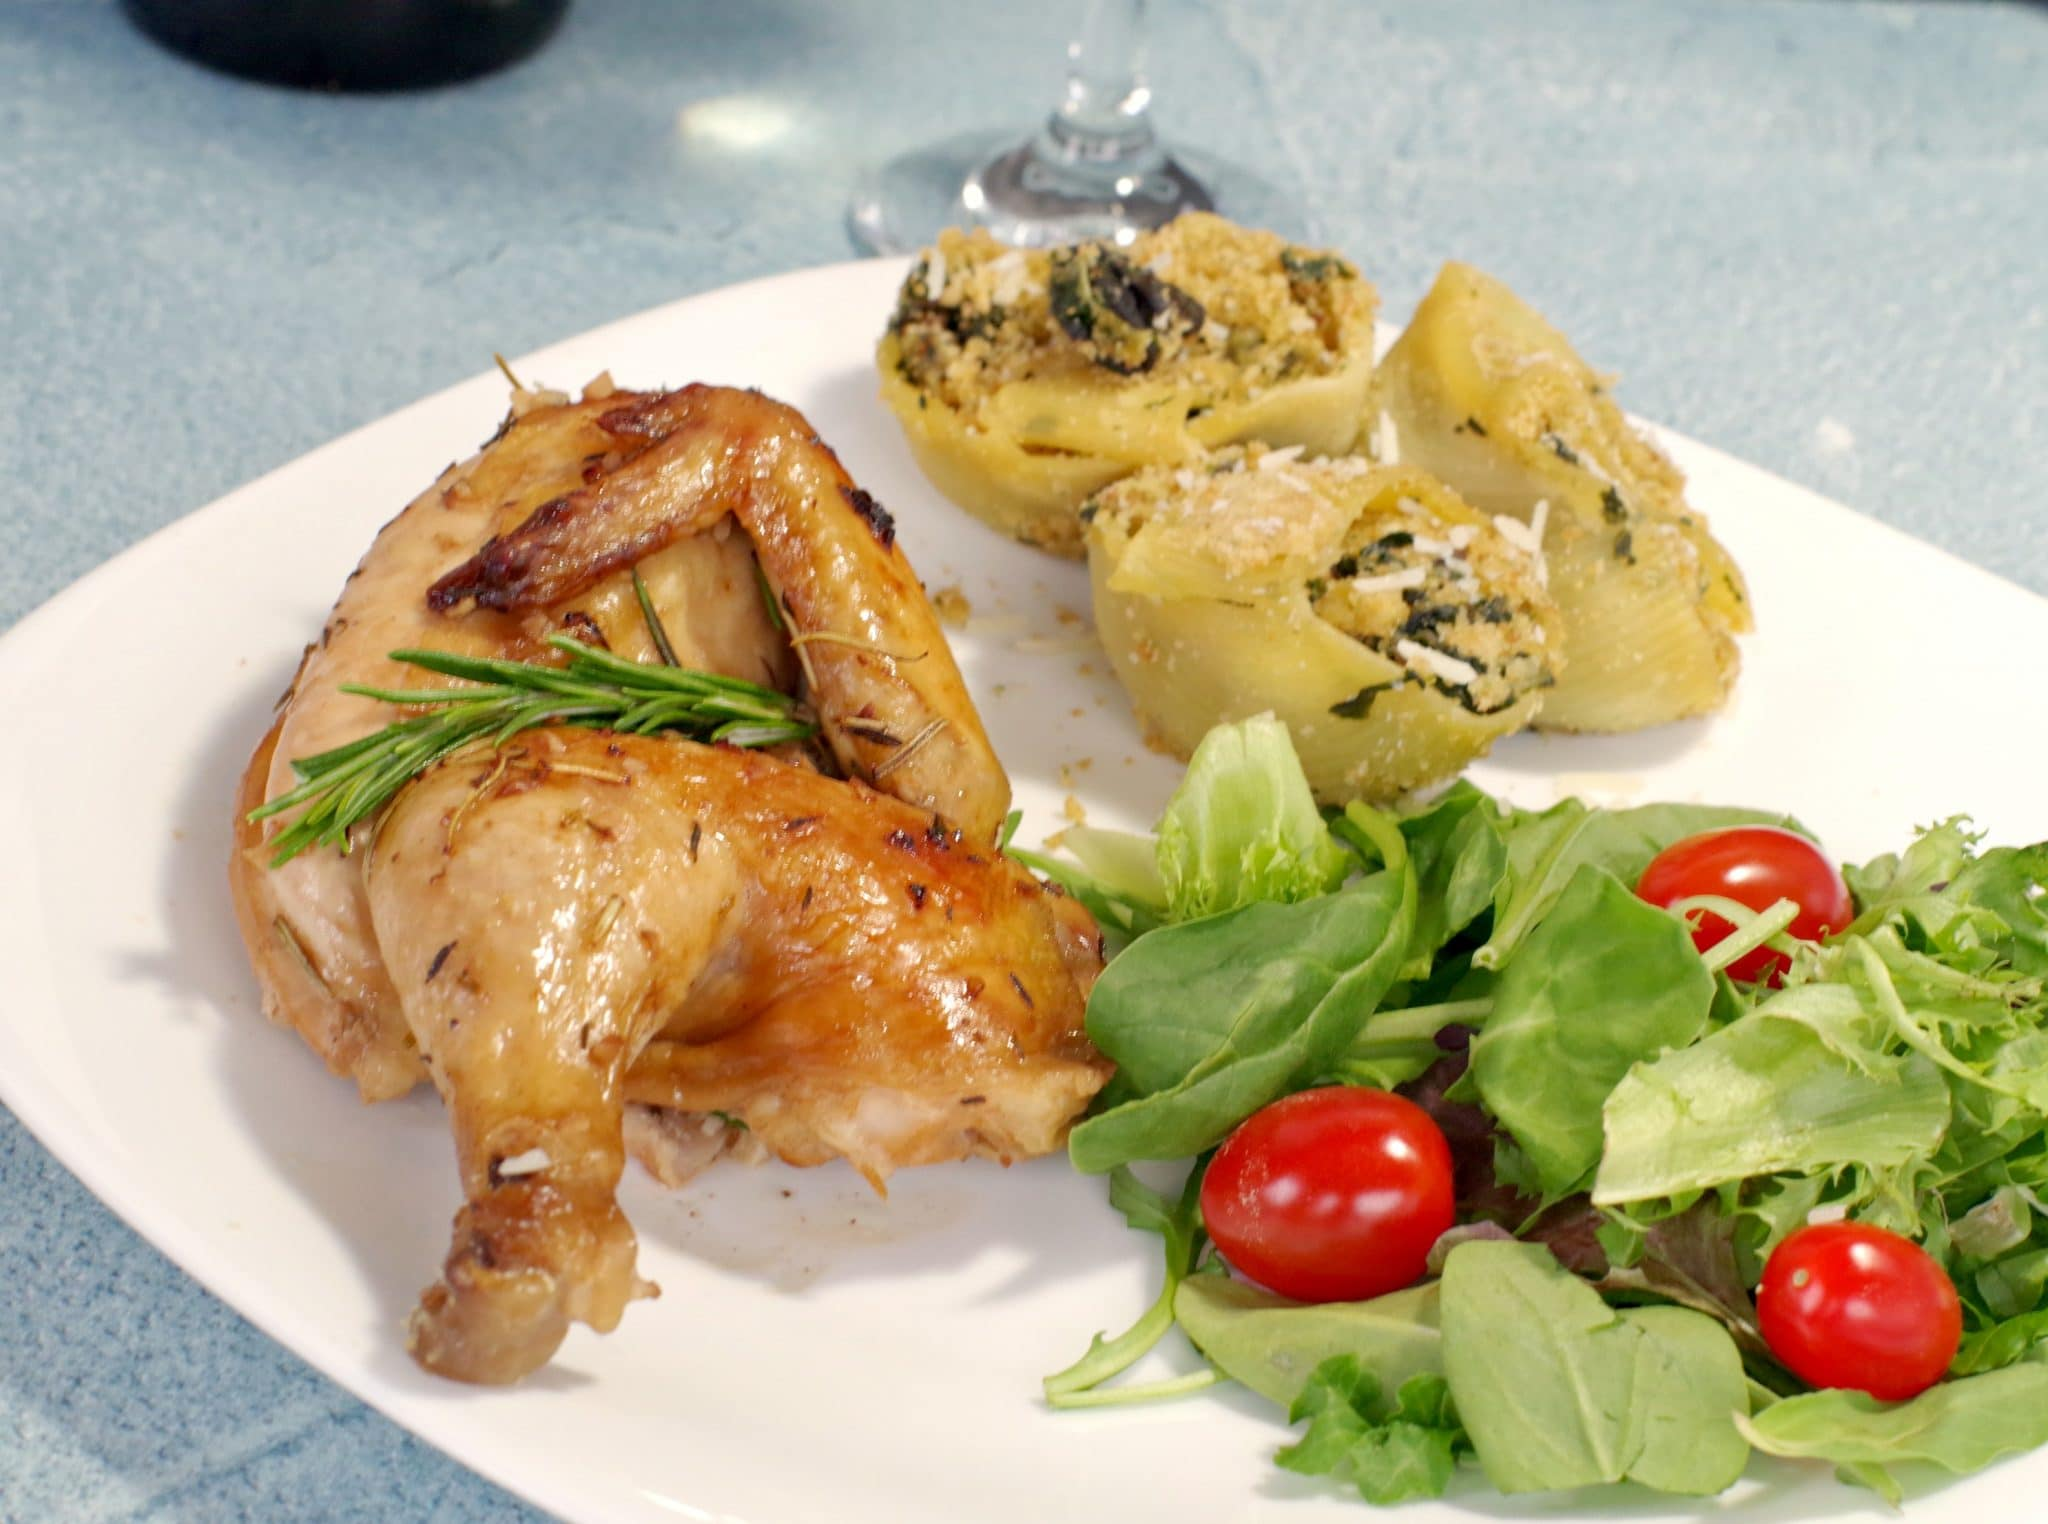 Cornish Hen on a plate with pasta and salad